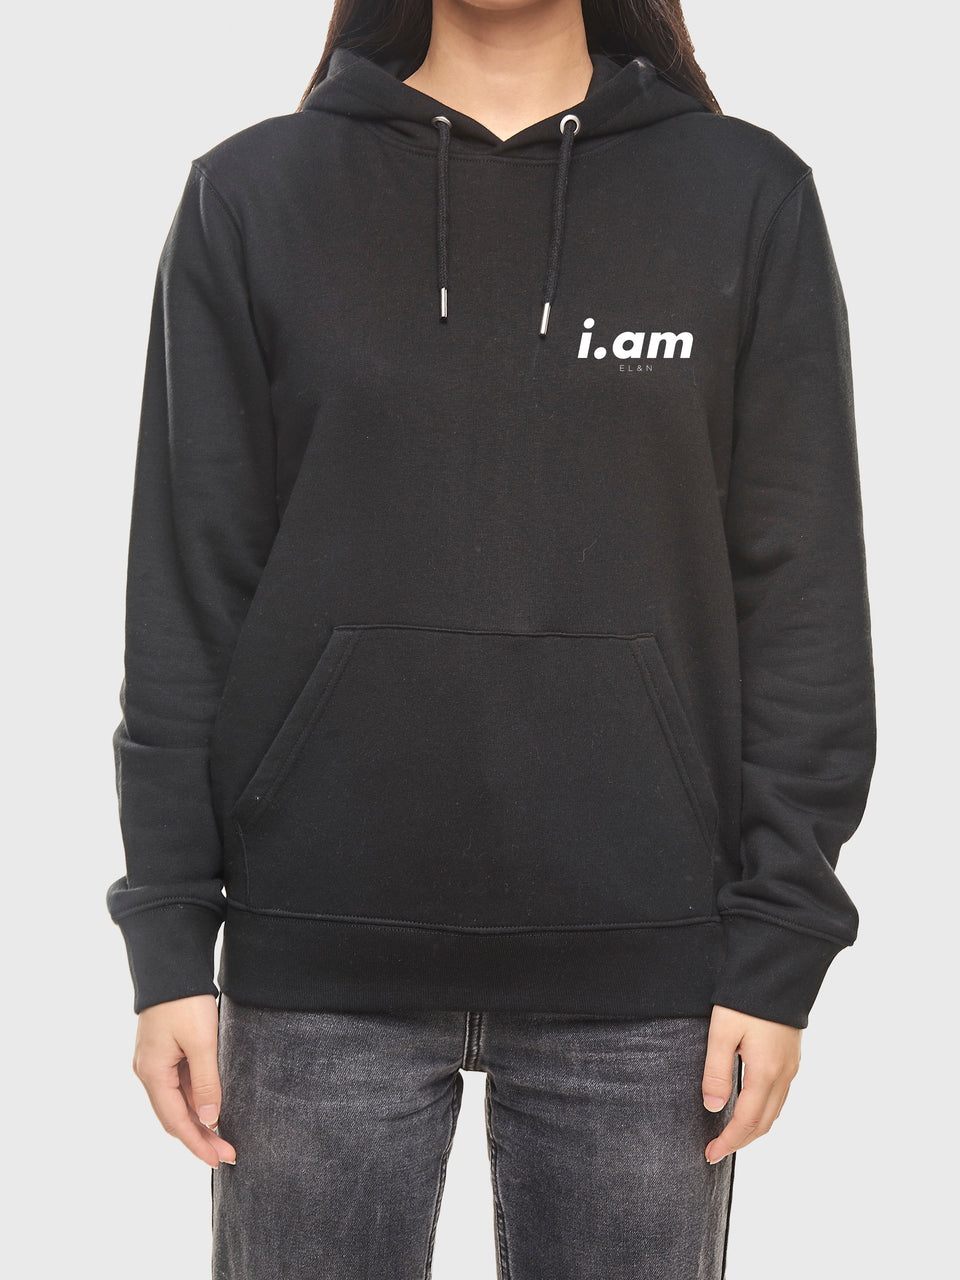 Making it - Black - Unisex pull over hoodie